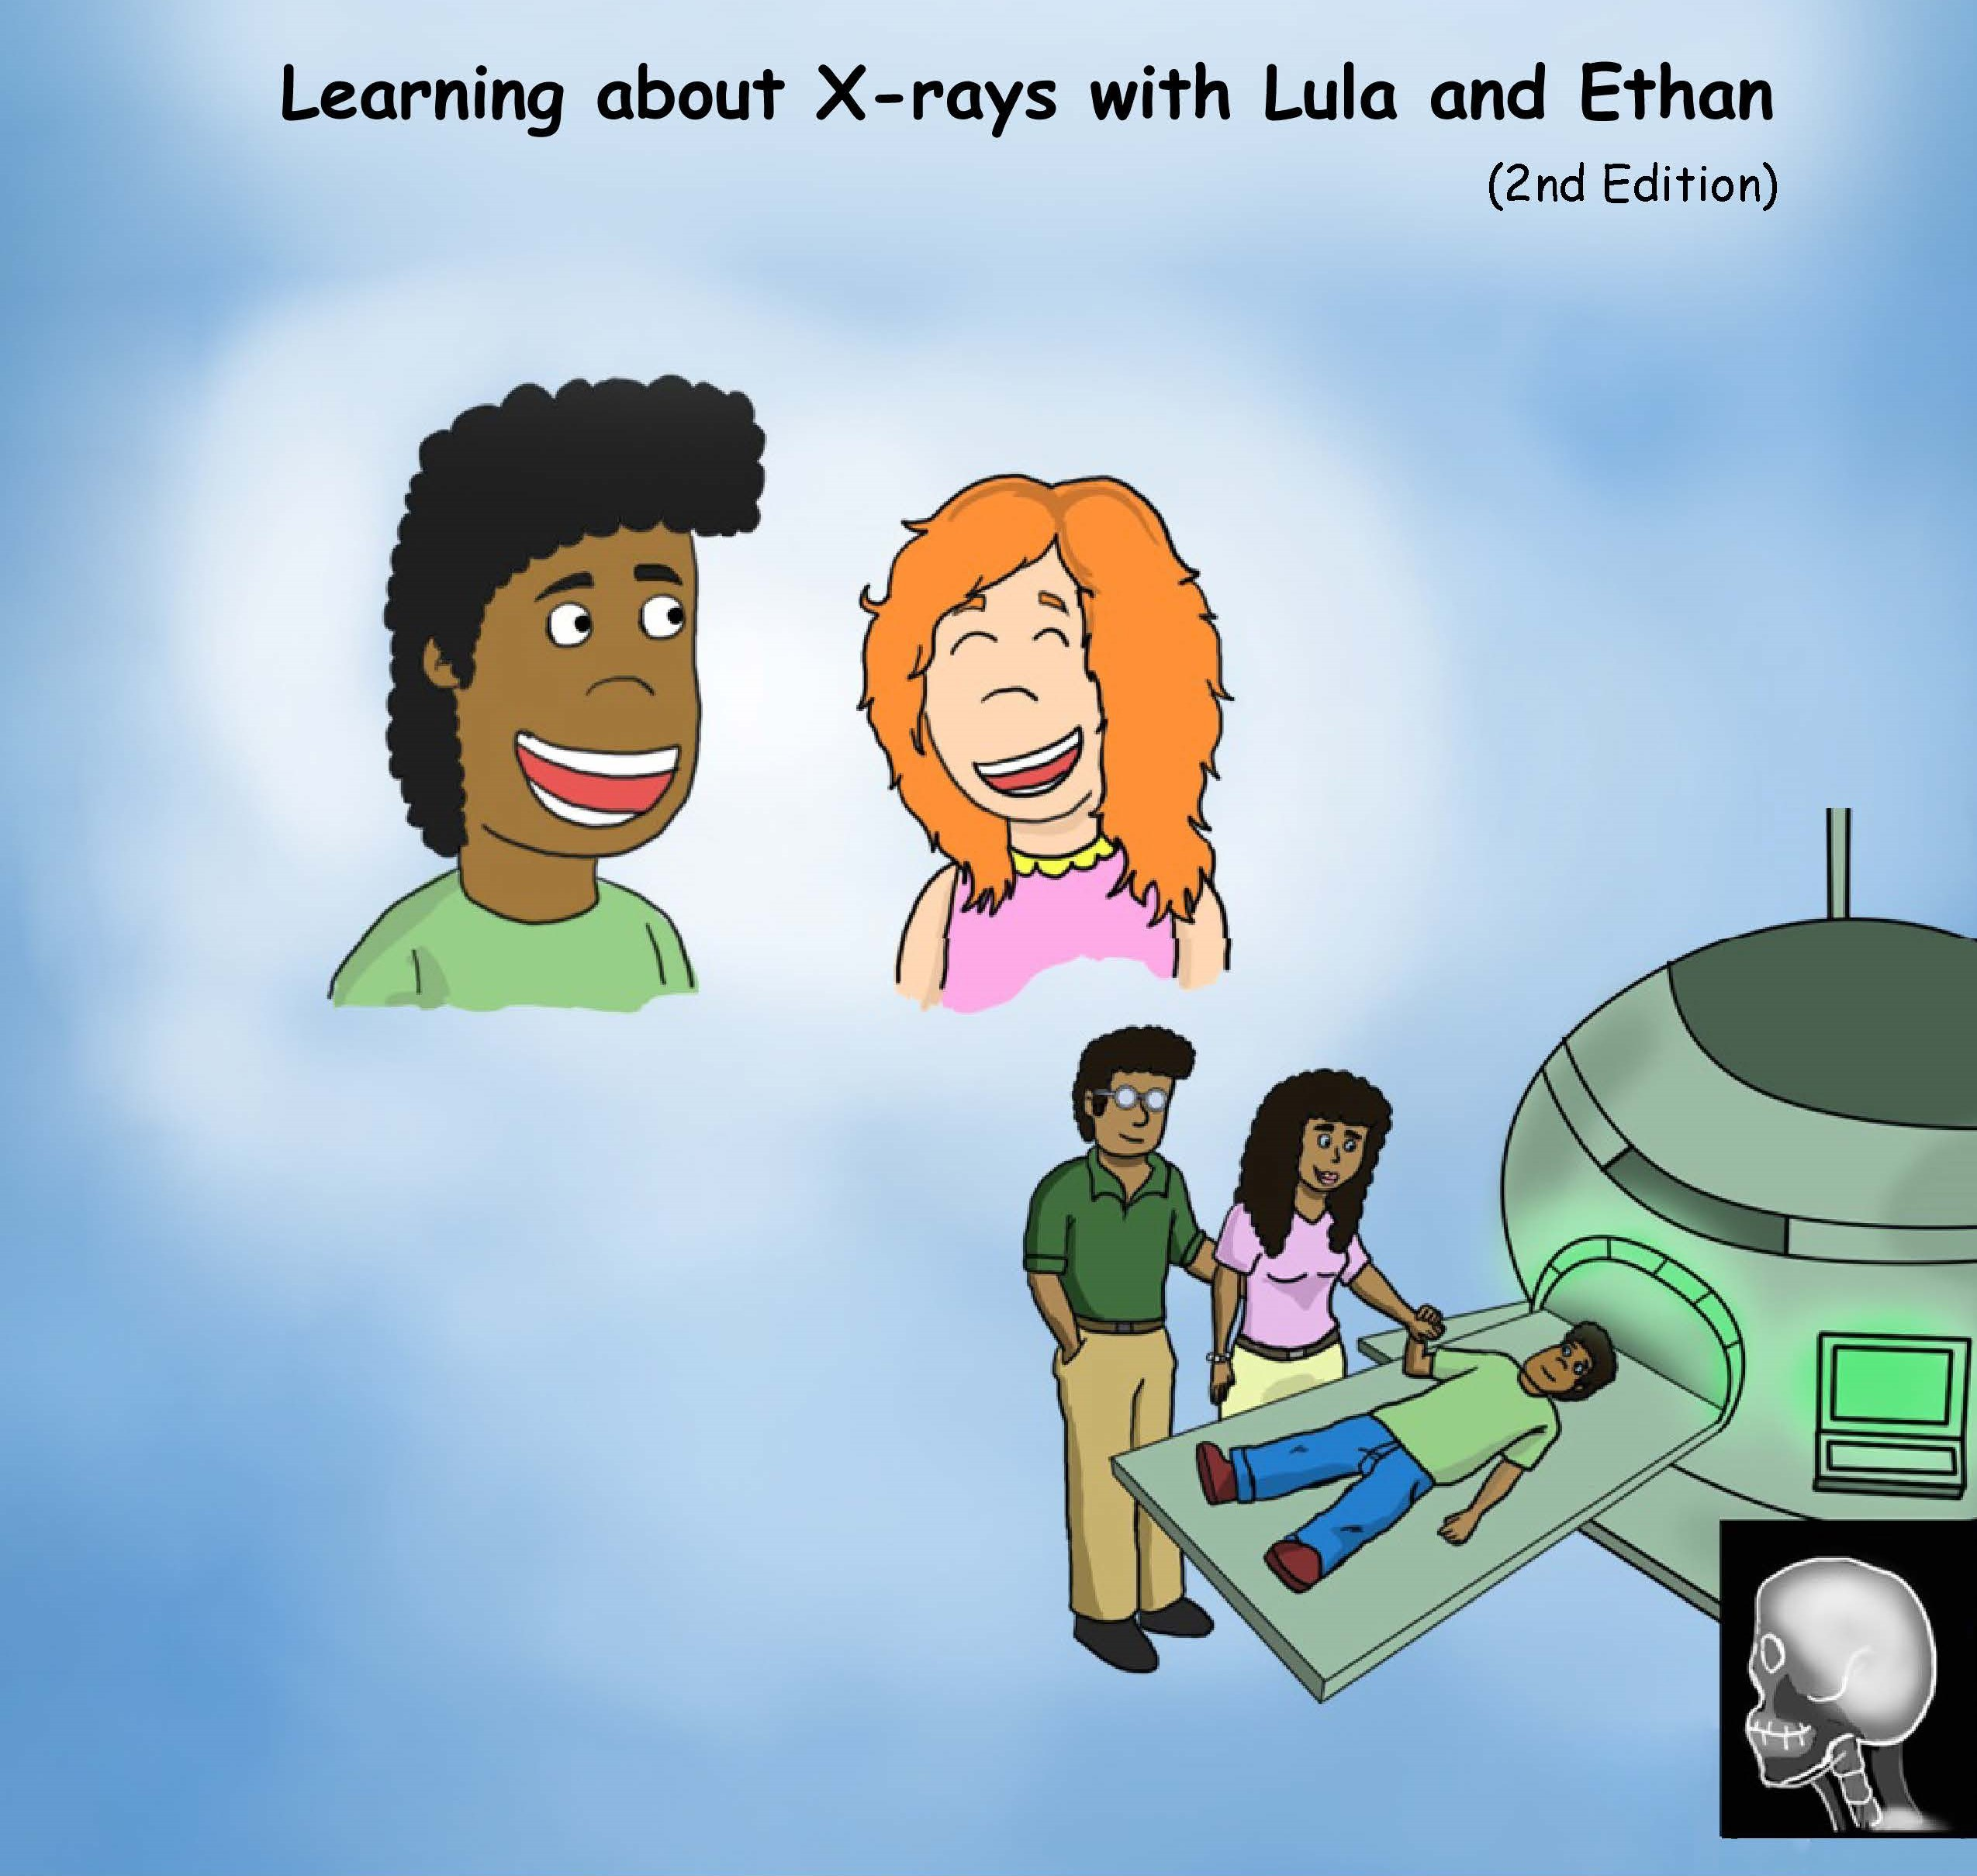 Learning about X-rays